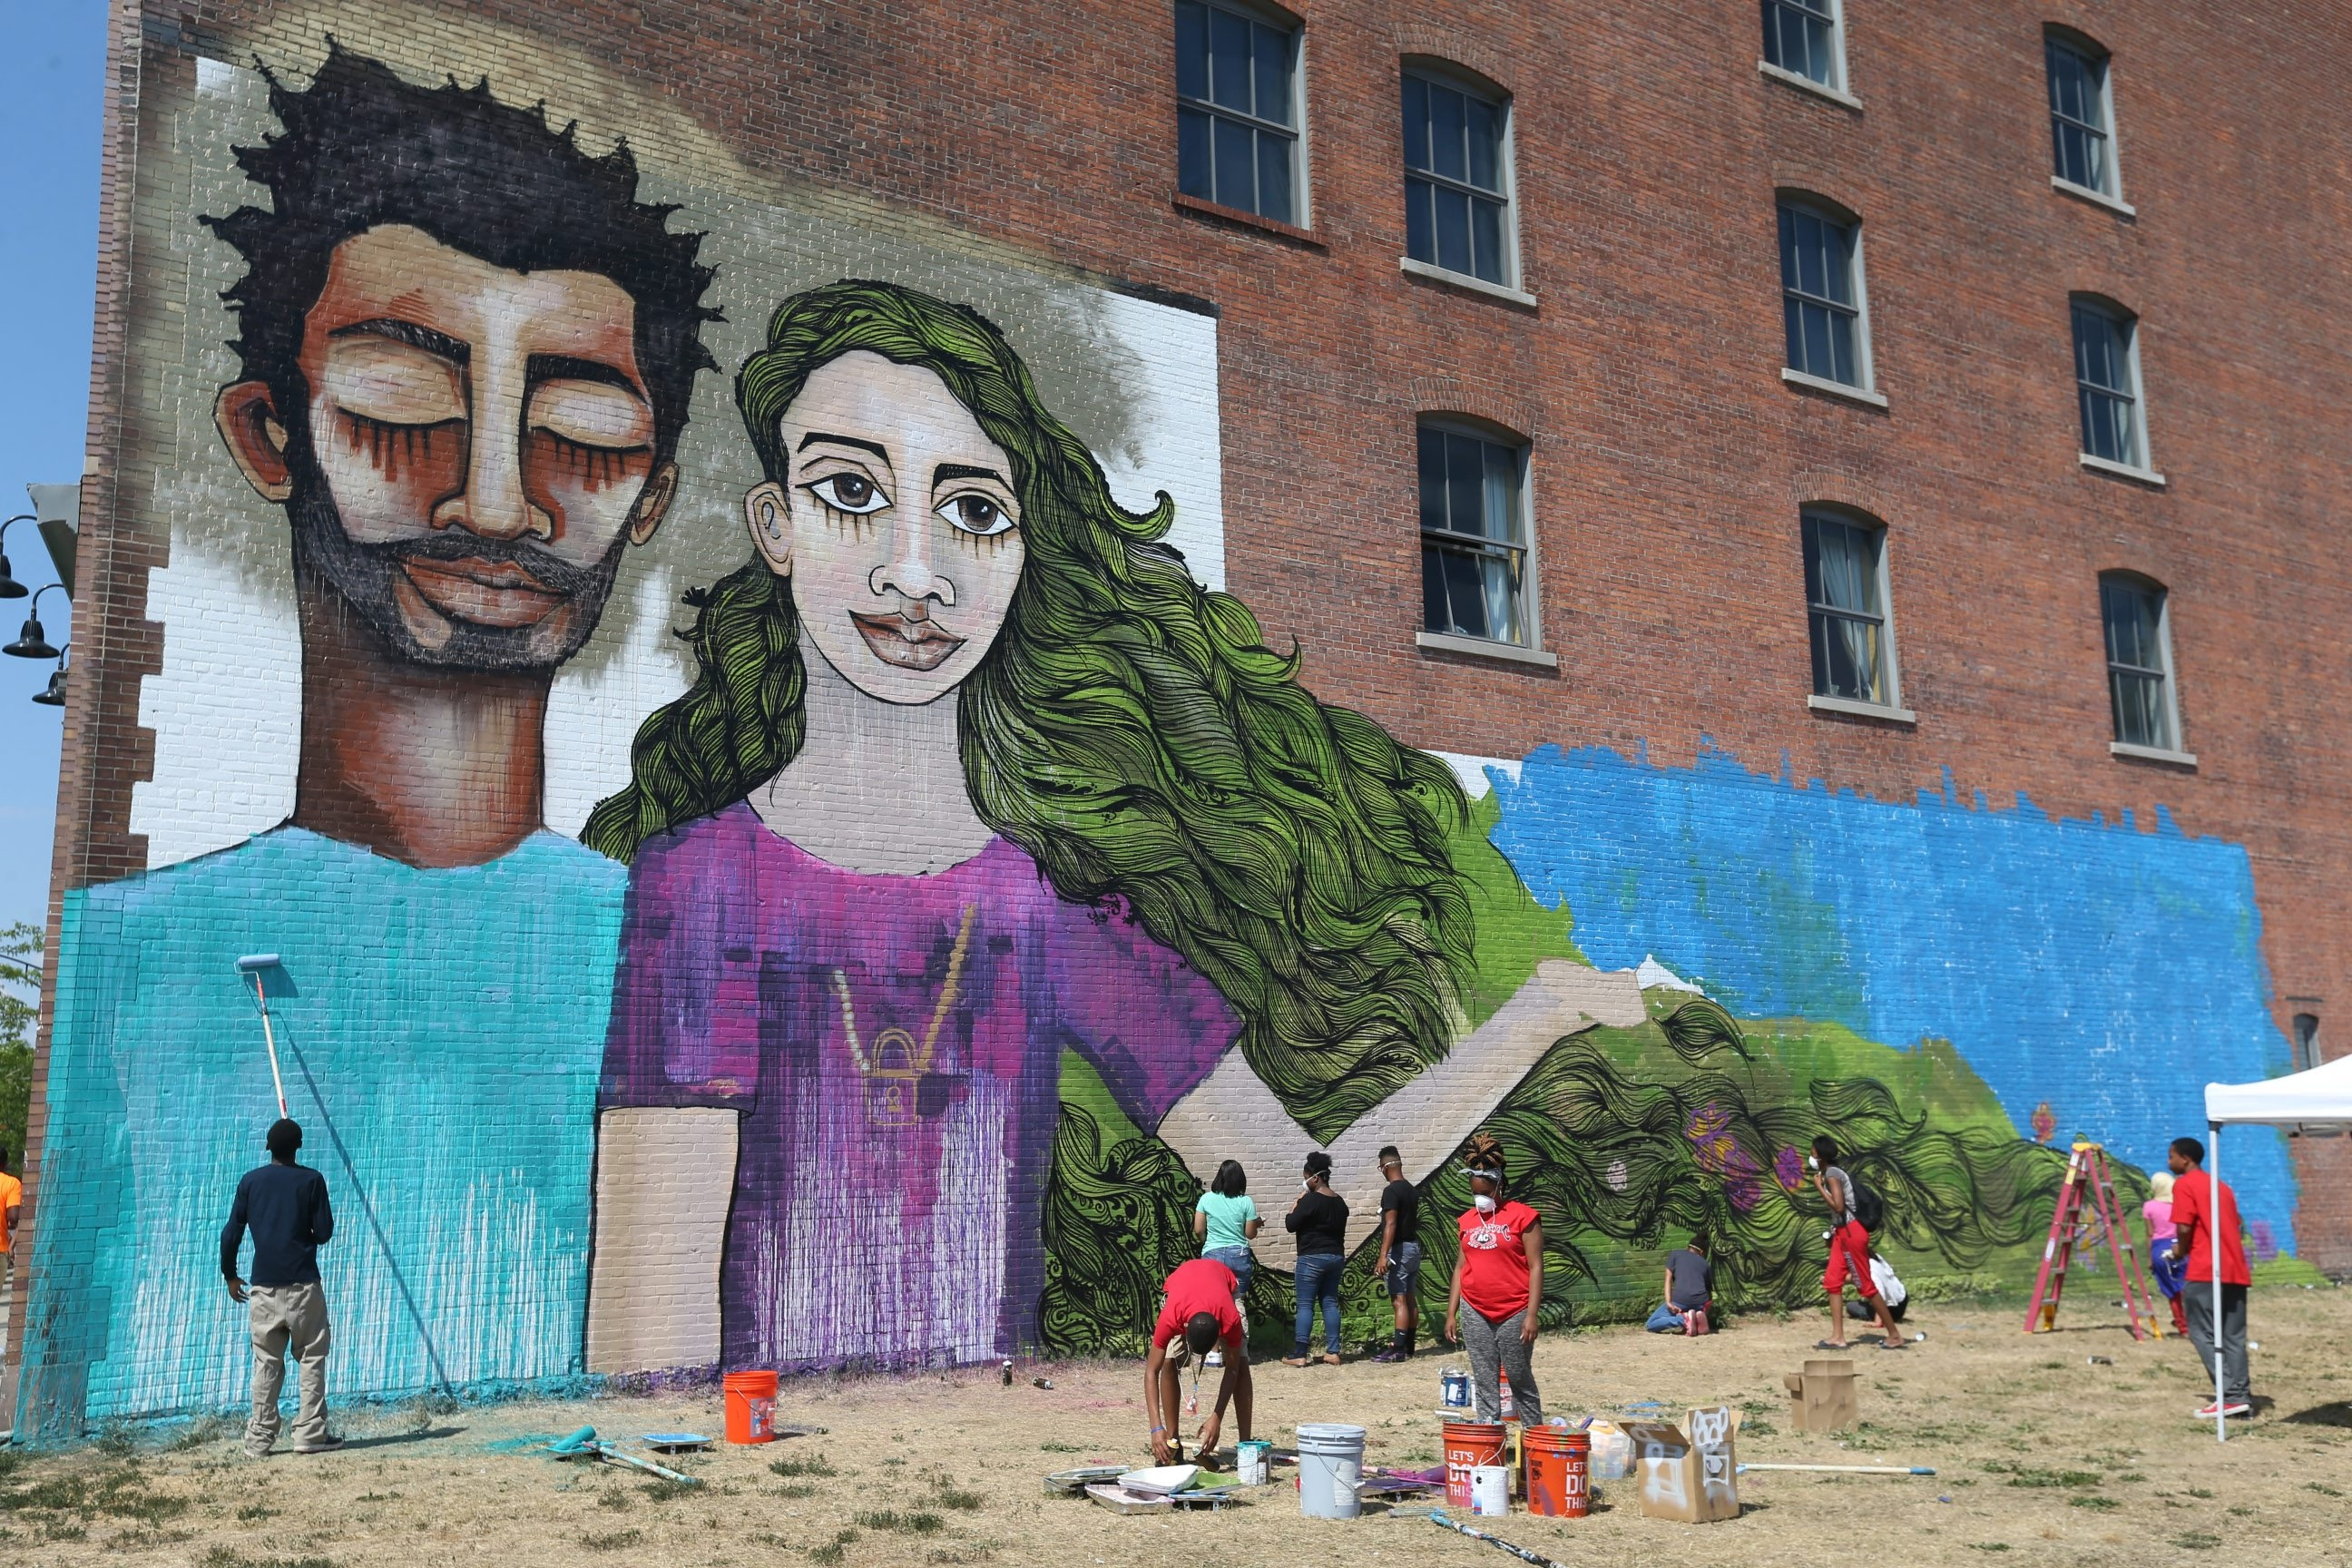 Thanks to a partnership between the Buffalo Center for Arts and Technology and the Albright-Knox Art Gallery, a  giant mural is now visible on the center's west wall at 1221 Main St. Students in the art program are working with well-known Brooklyn muralist Alice Mizrachi.